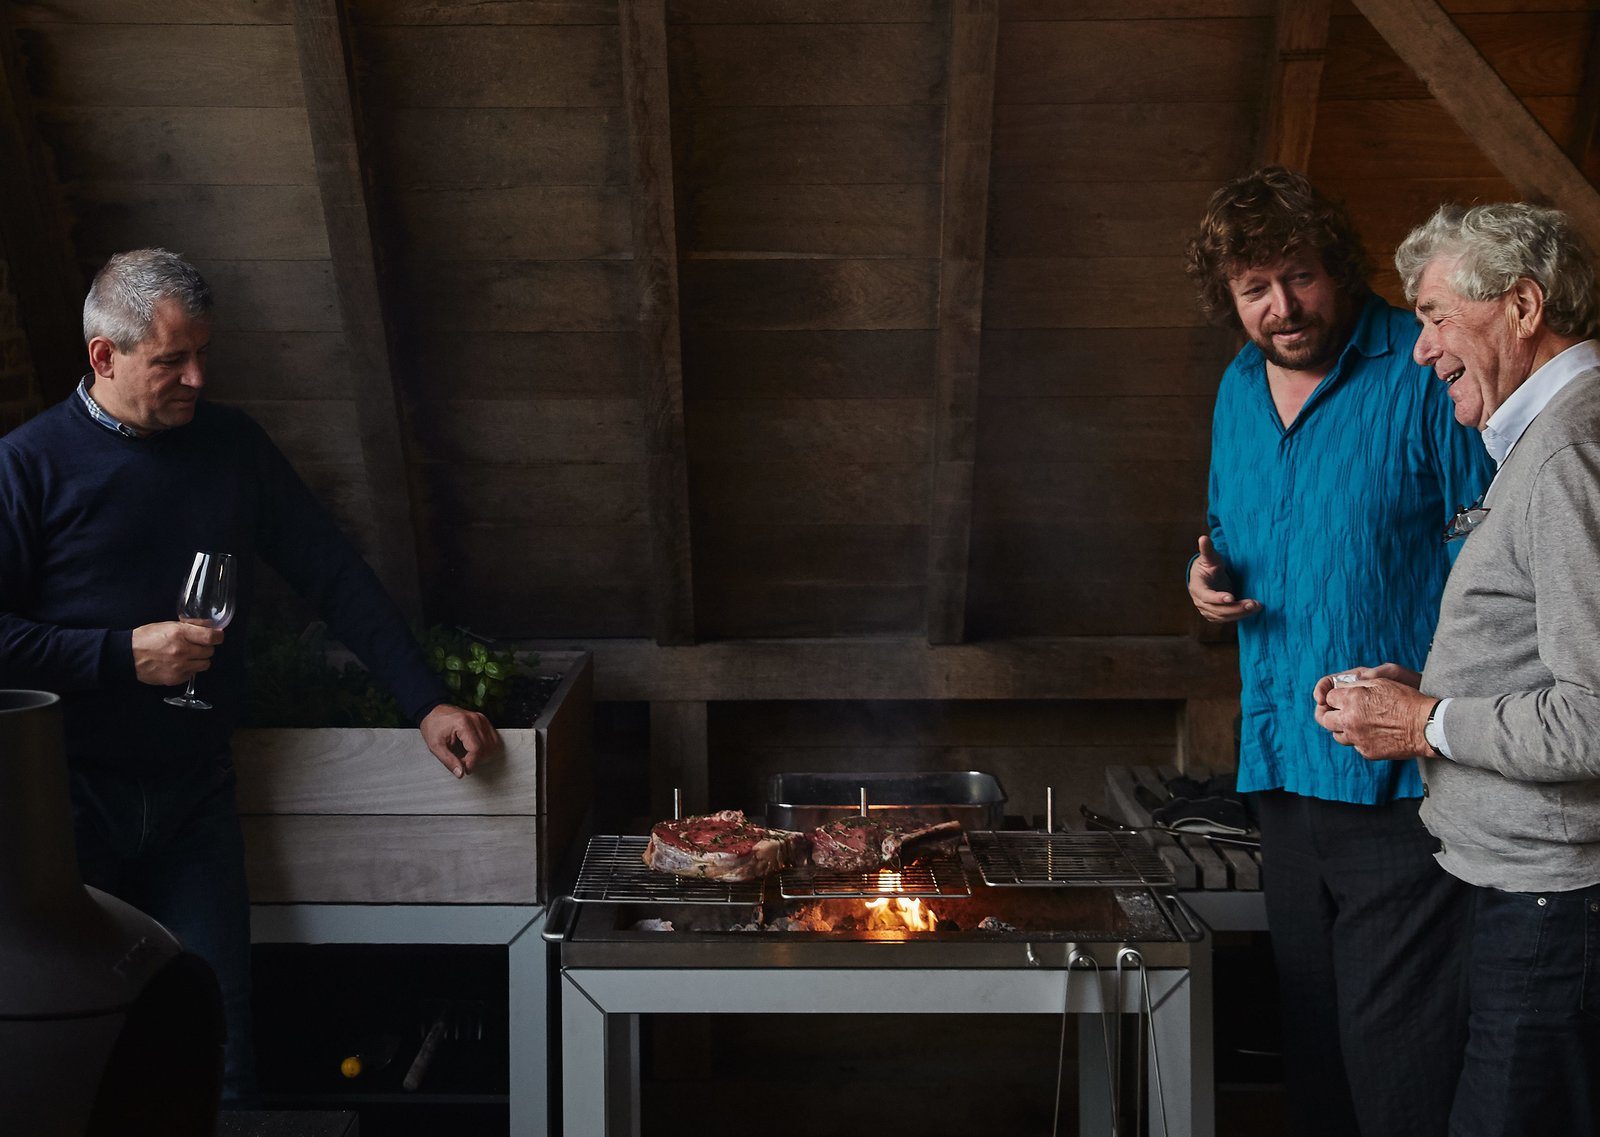 """""""It's usable when the weather is not perfect, so we use this area most often,"""" Wynants says.  Photo 8 of 11 in A Kubrick-Esque Farmhouse Kicks Its Fossil Fuel Habit"""